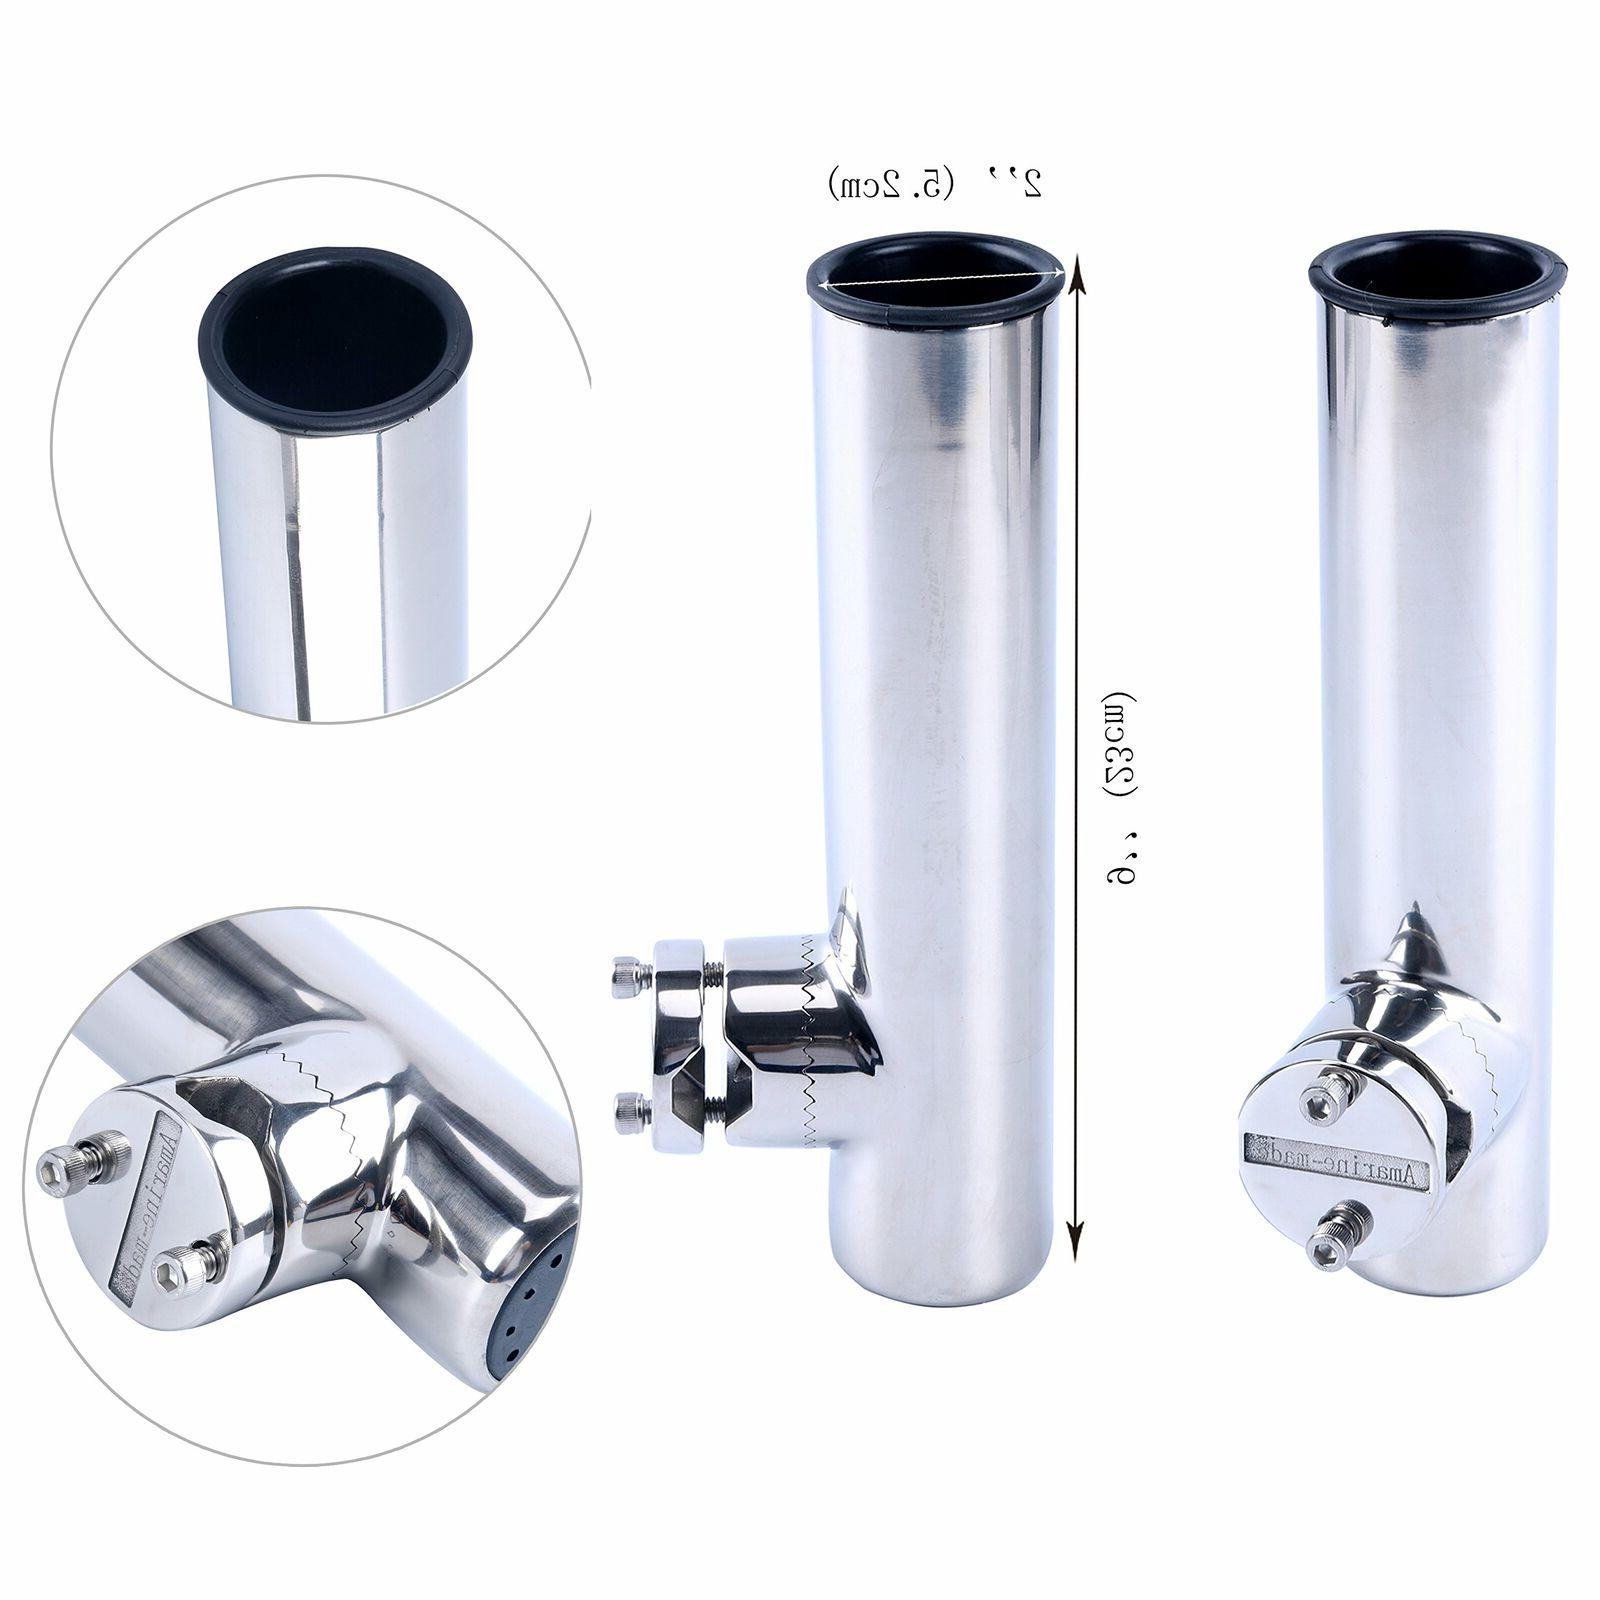 Amarine-made Stainless Clamp on Fishing Rod Holder for Rails